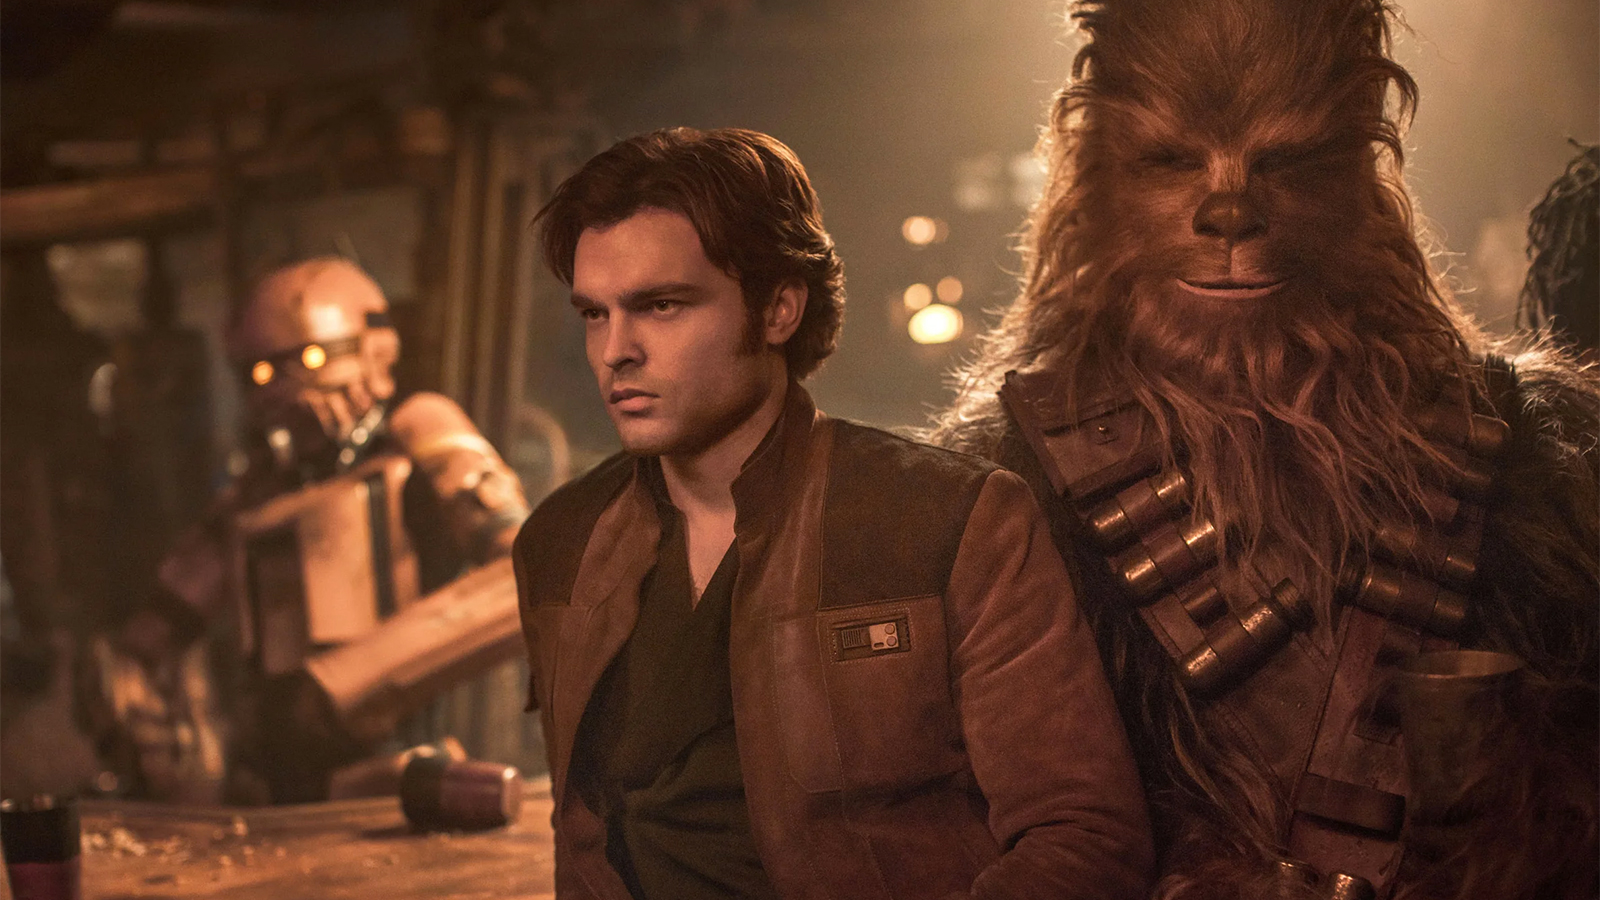 Hans Solo and Chewbacca in Star Wars